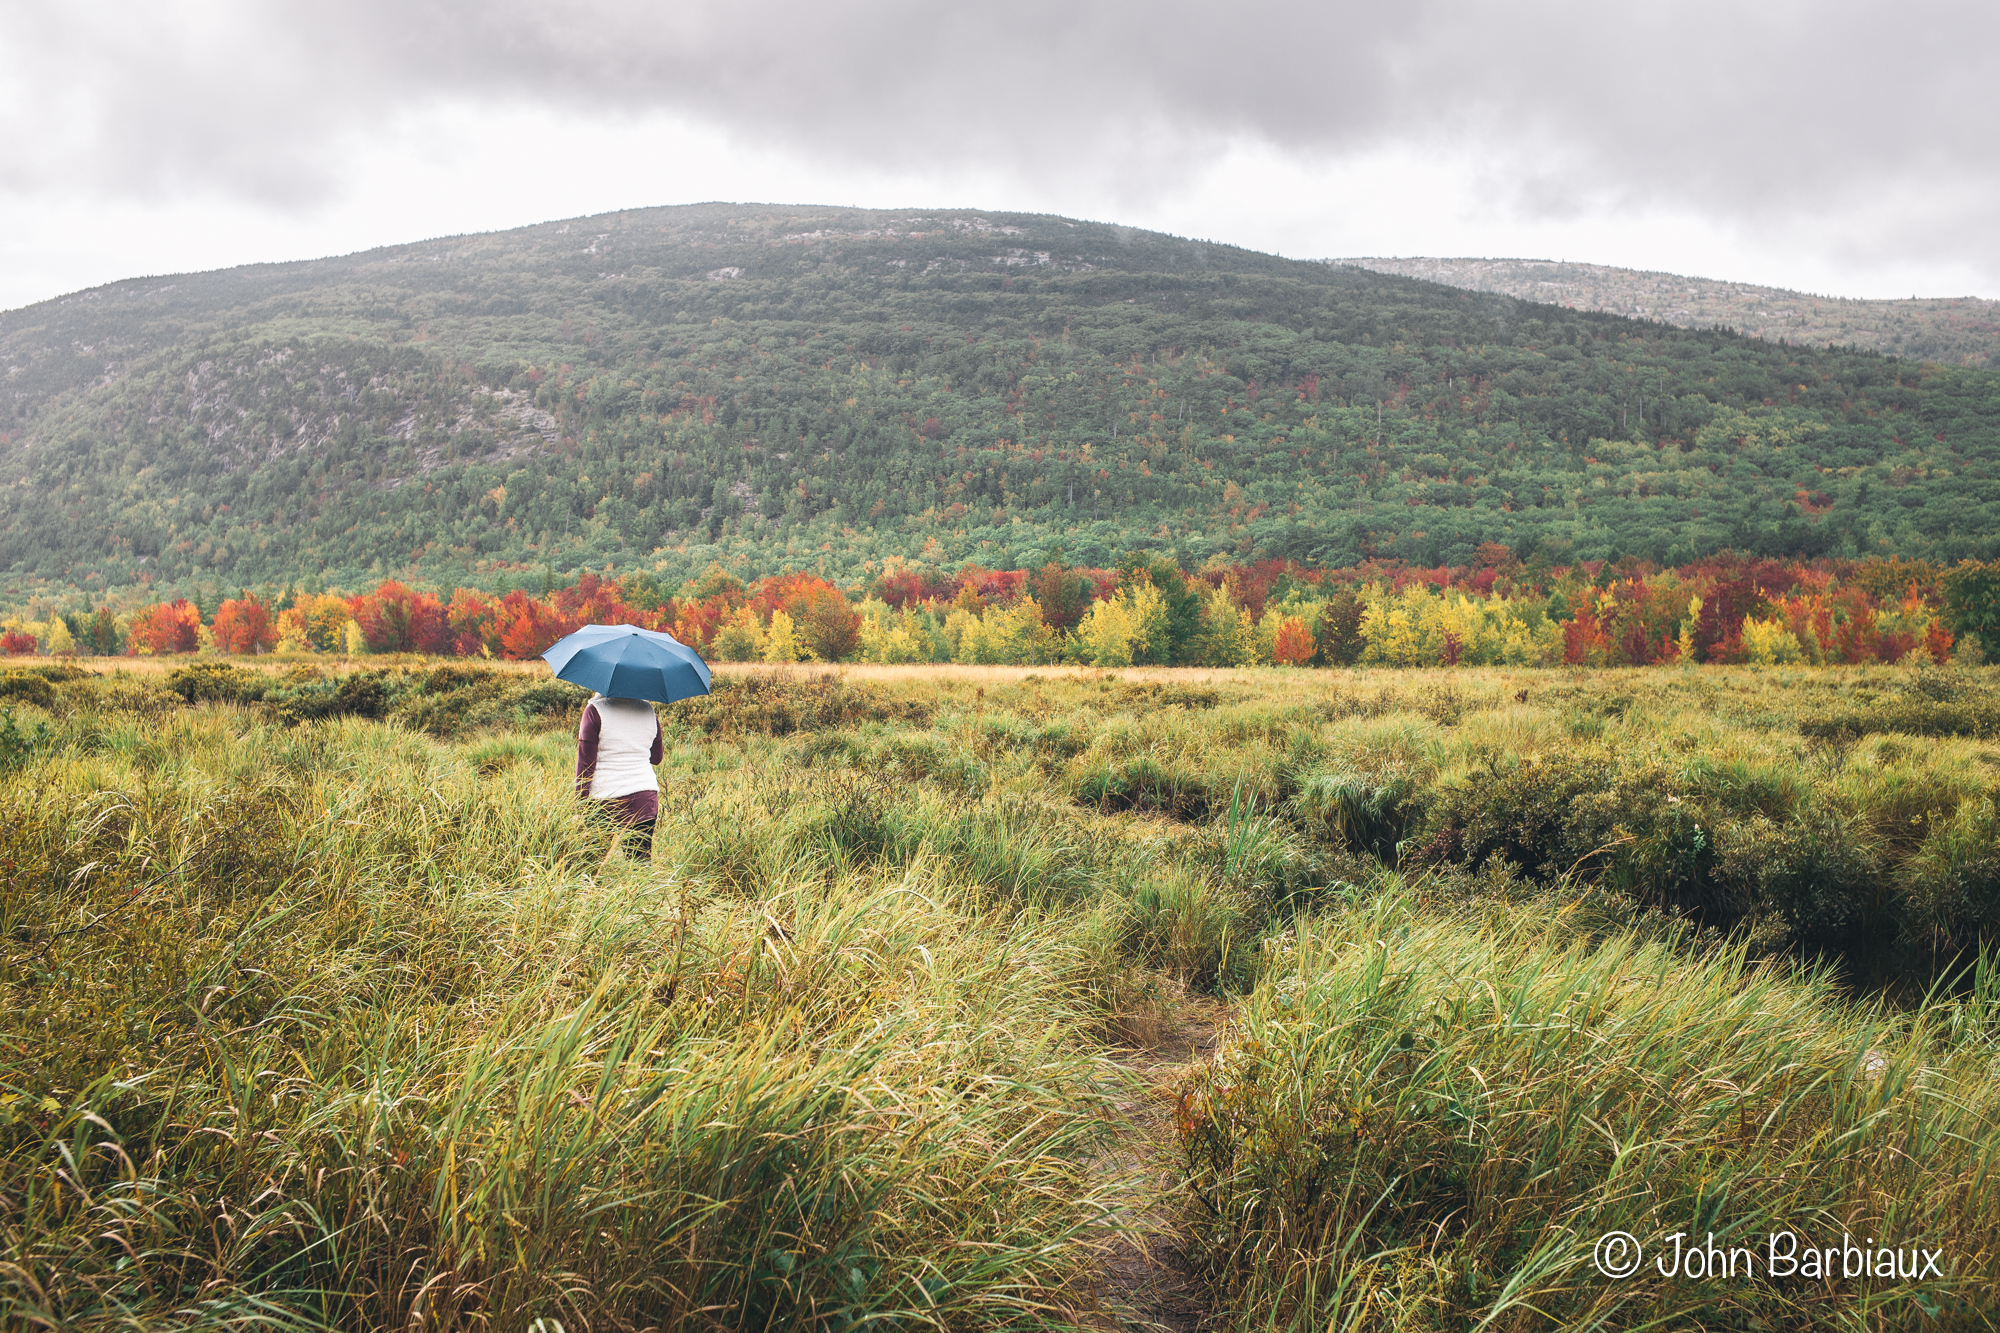 Acadia National Park, Rainy weather, photography, Leica, Leica M10-P, street photography, national park photography, fall, foliage, autumn, Maine